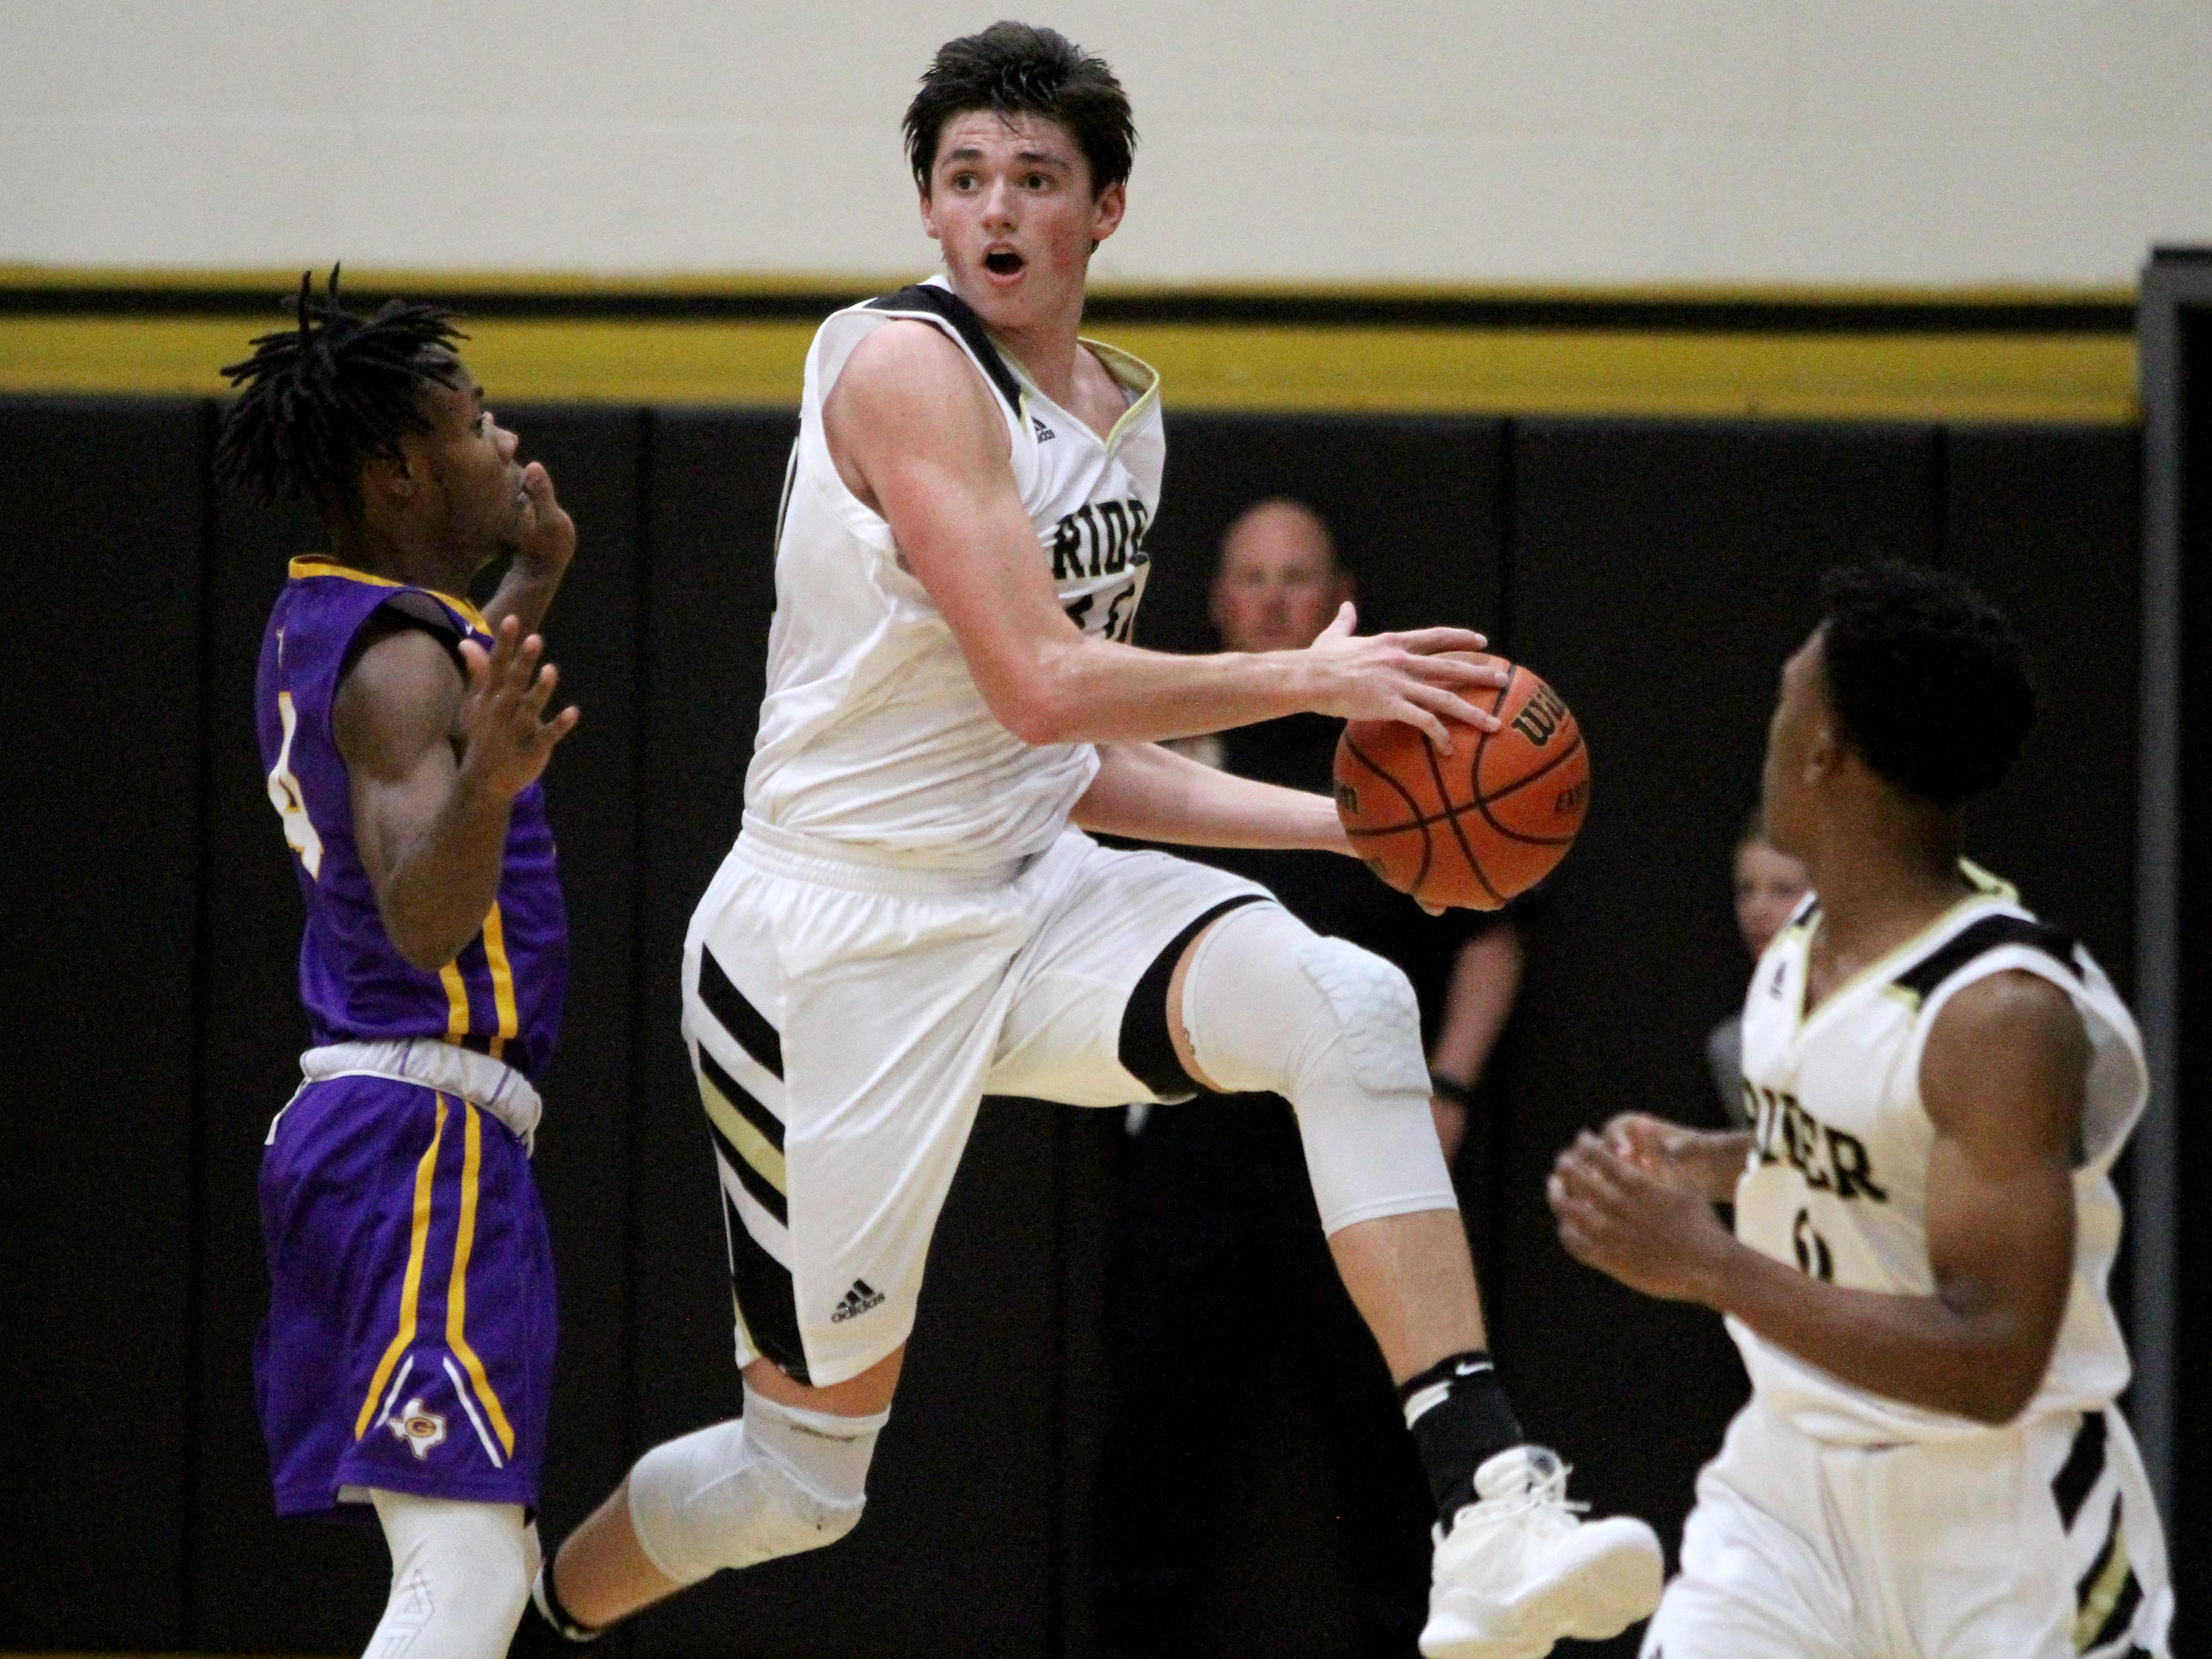 Rider's Ty Caswell throws the ball toward the basket at the end of the half of the game against Granbury Saturday, Nov. 17, 2018, at Rider.